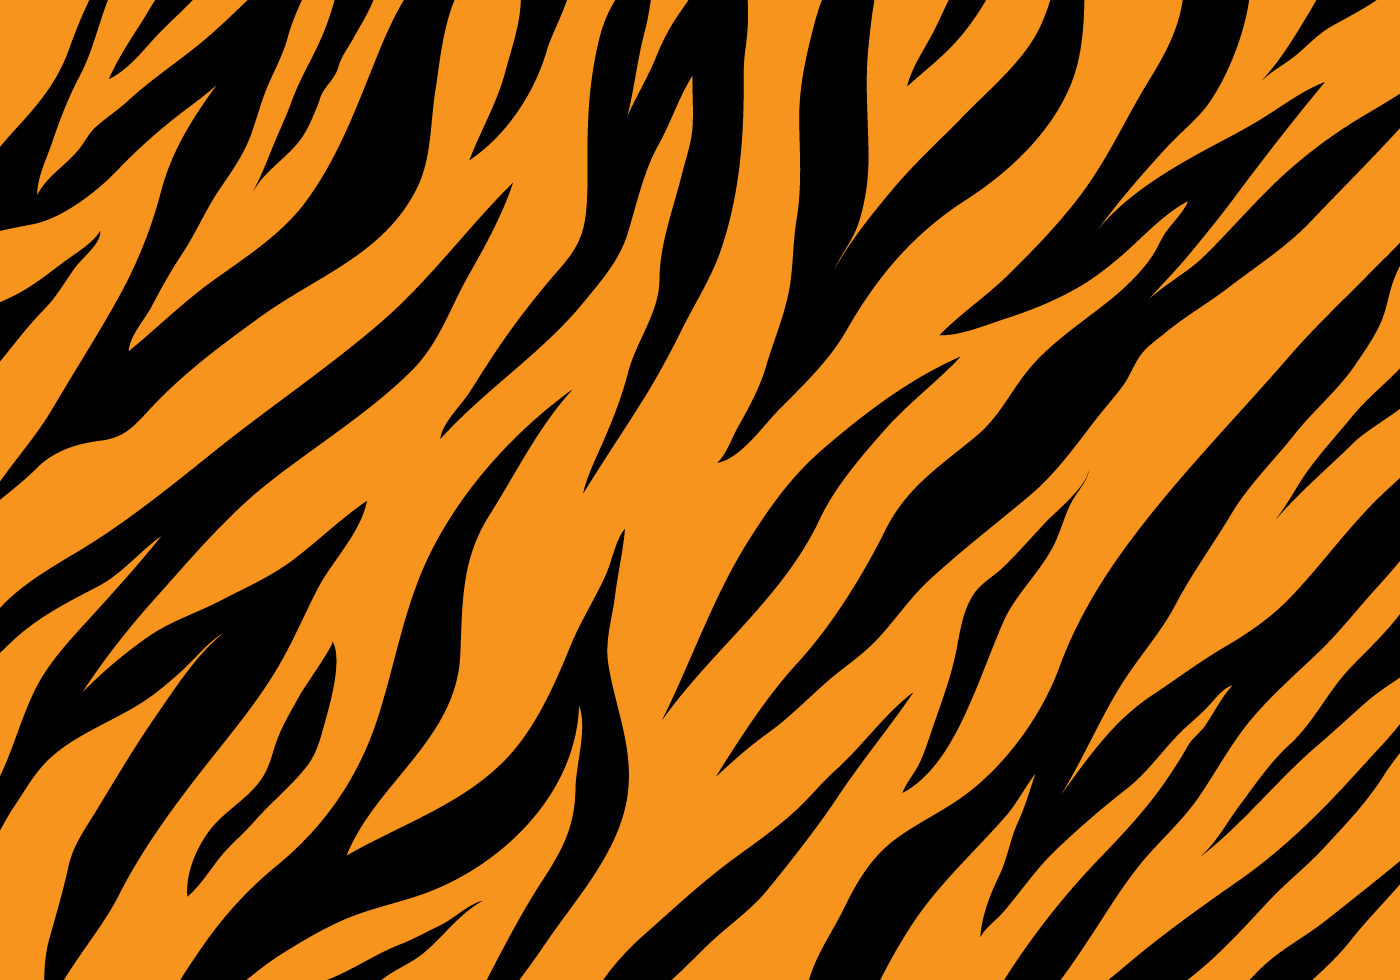 Tiger skin background tumblr